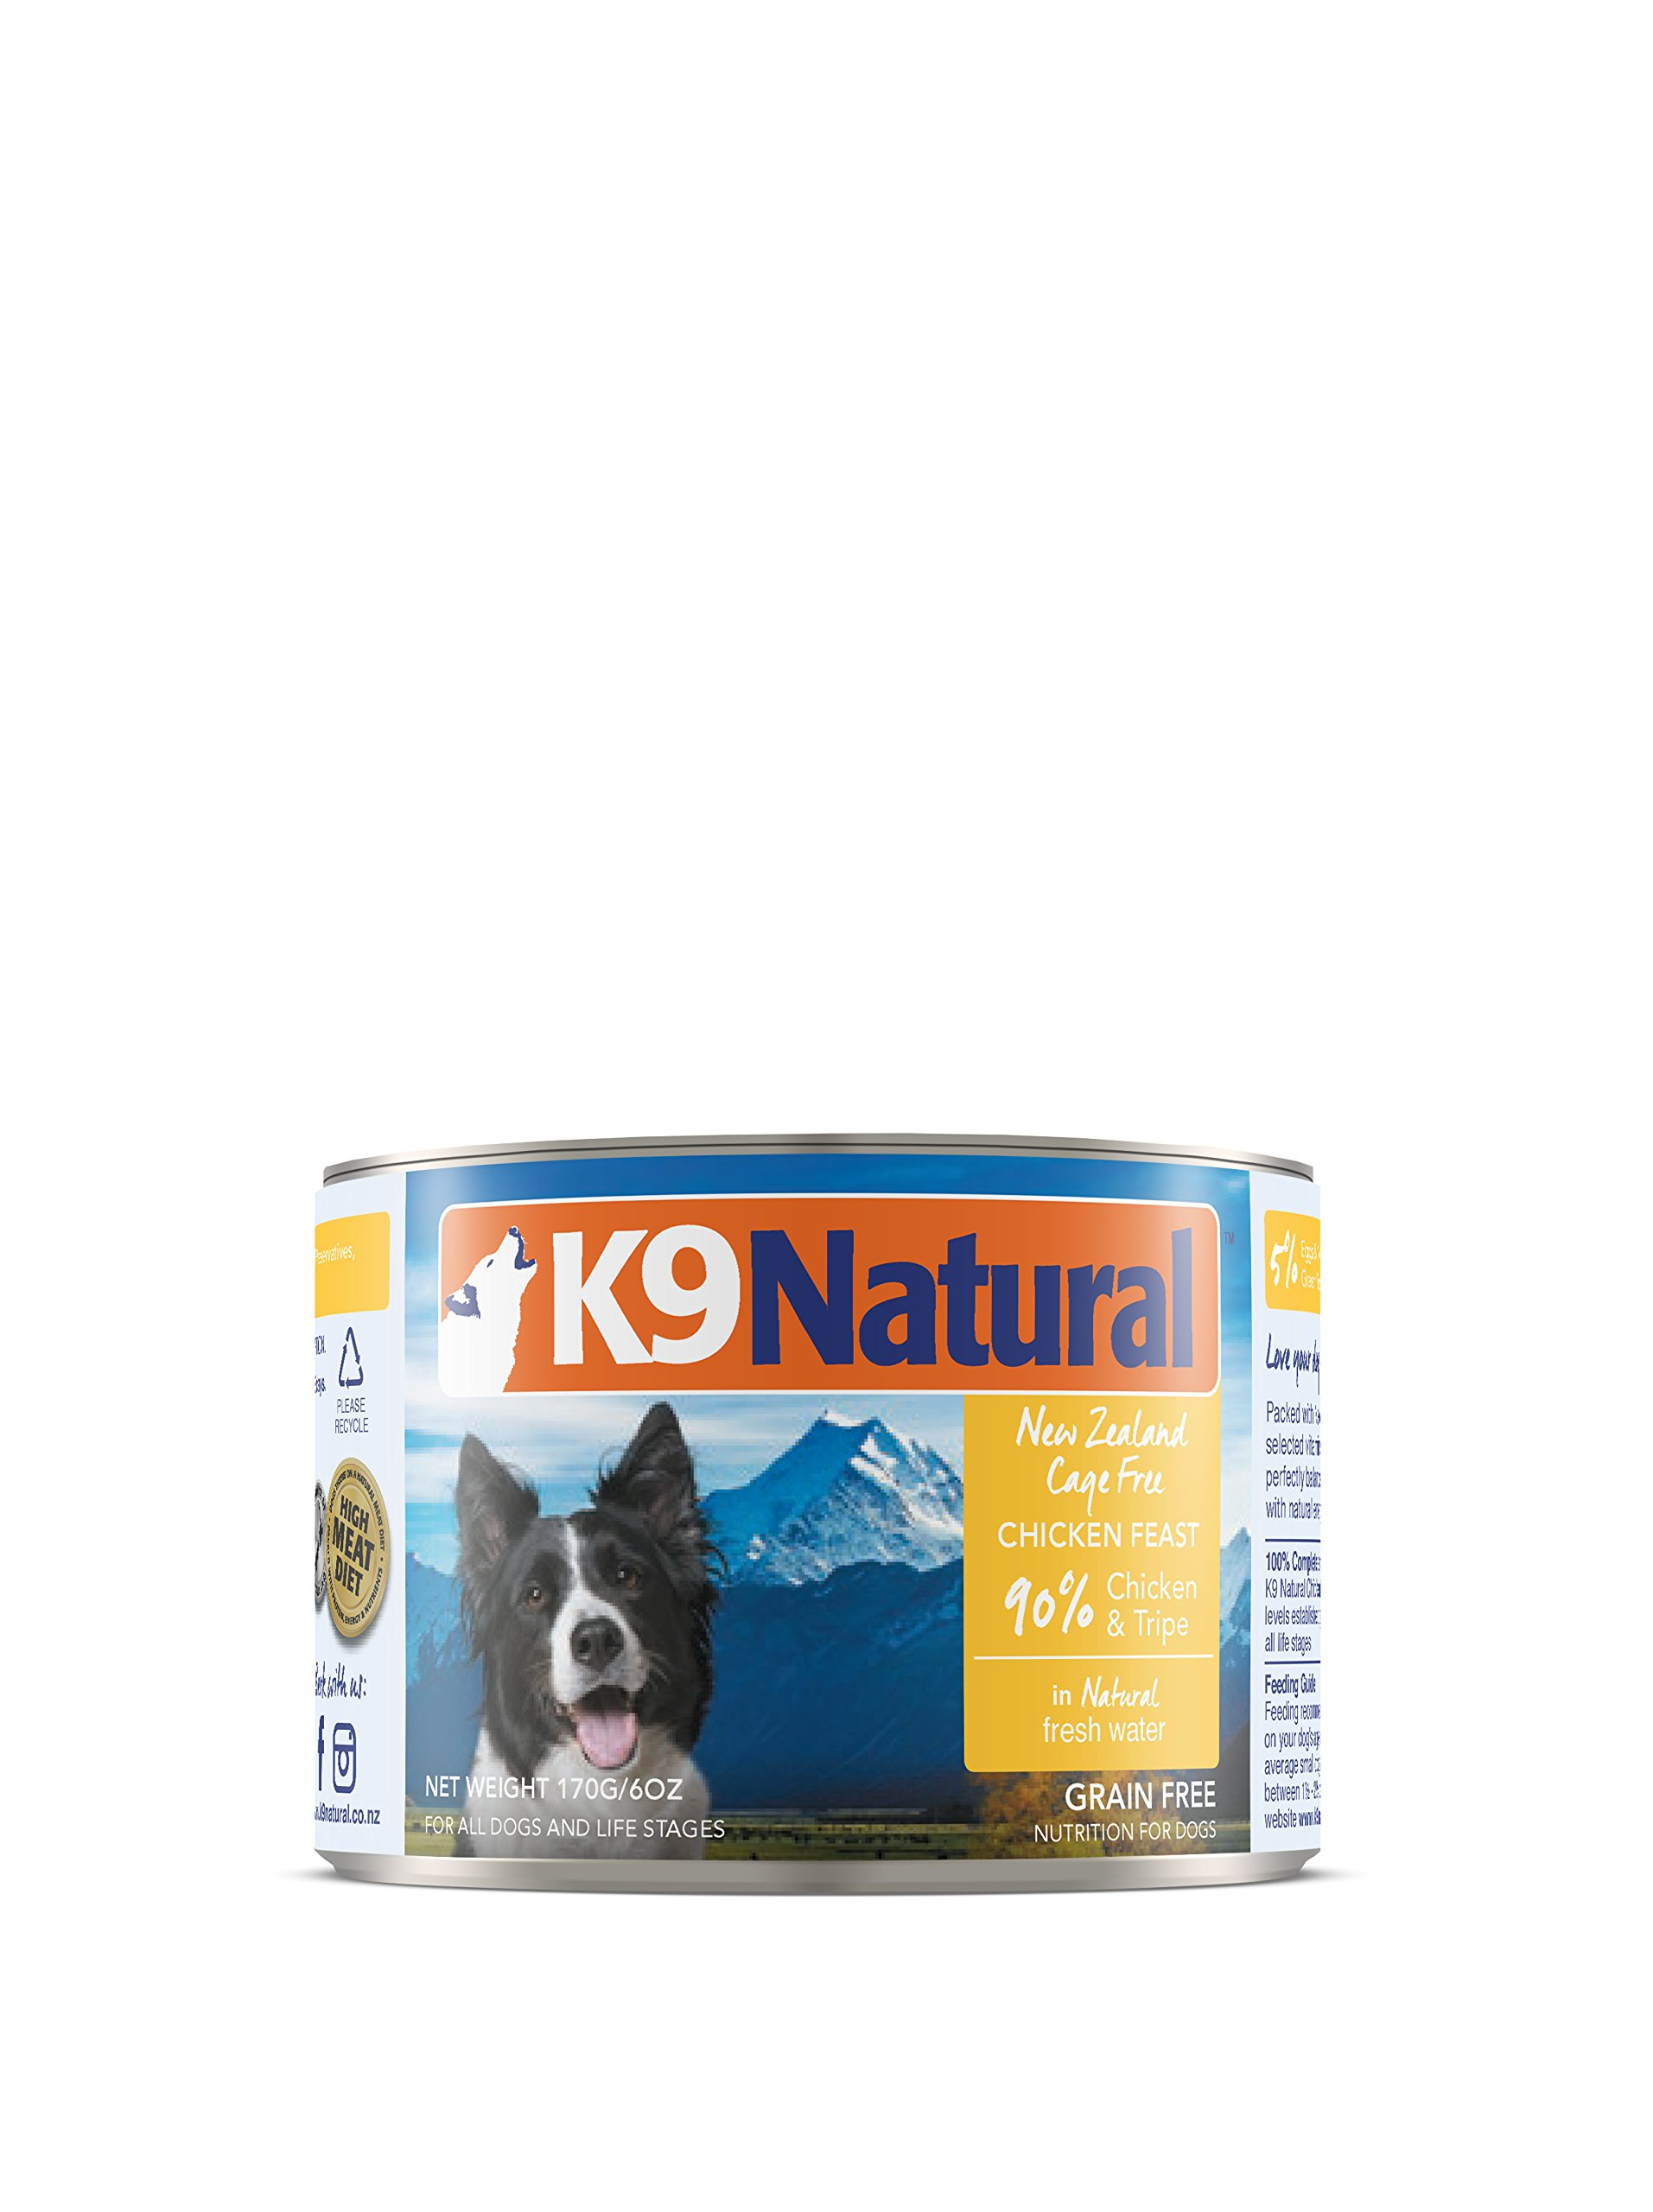 K9 Natural Canned Dog Food By Perfect Grain Free, Healthy, Hypoallergenic Limited Ingredients - Made in New Zealand - BPA-Free Wet Dog Food - Nutrition For All Dog Types